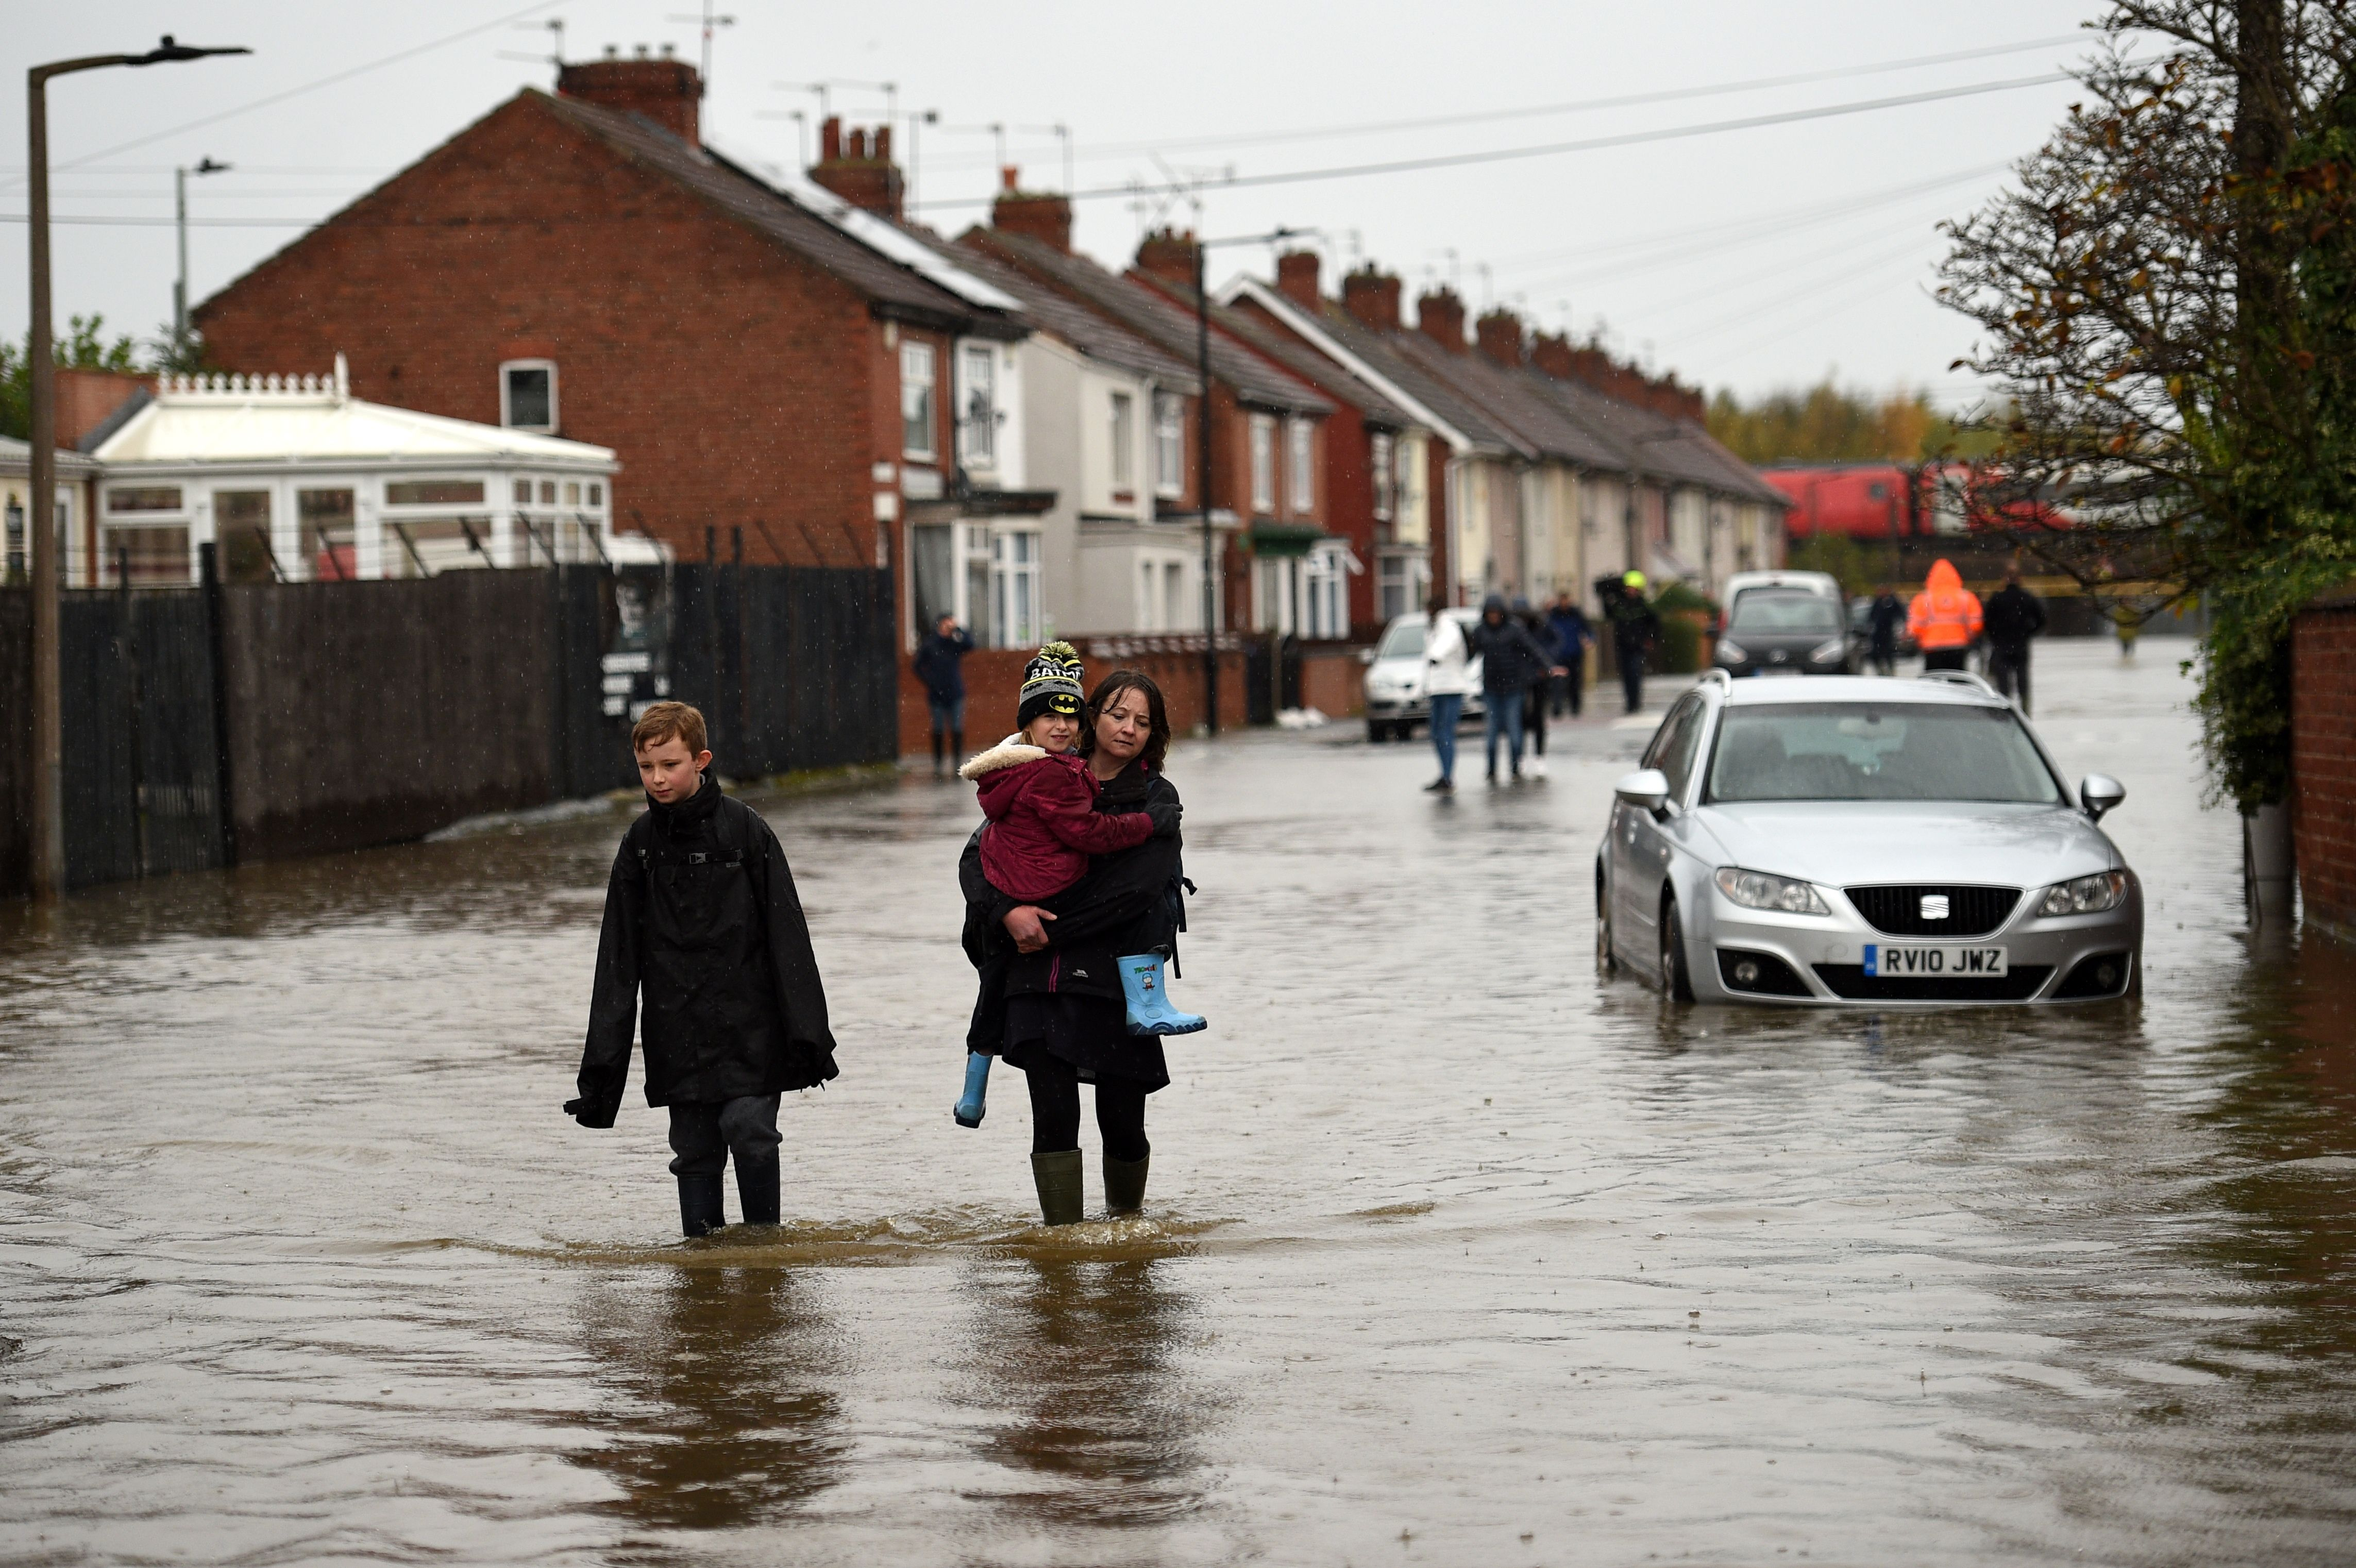 Over a month's worth of rain fell on parts of England Thursday, with some people forced to evacuate their homes.